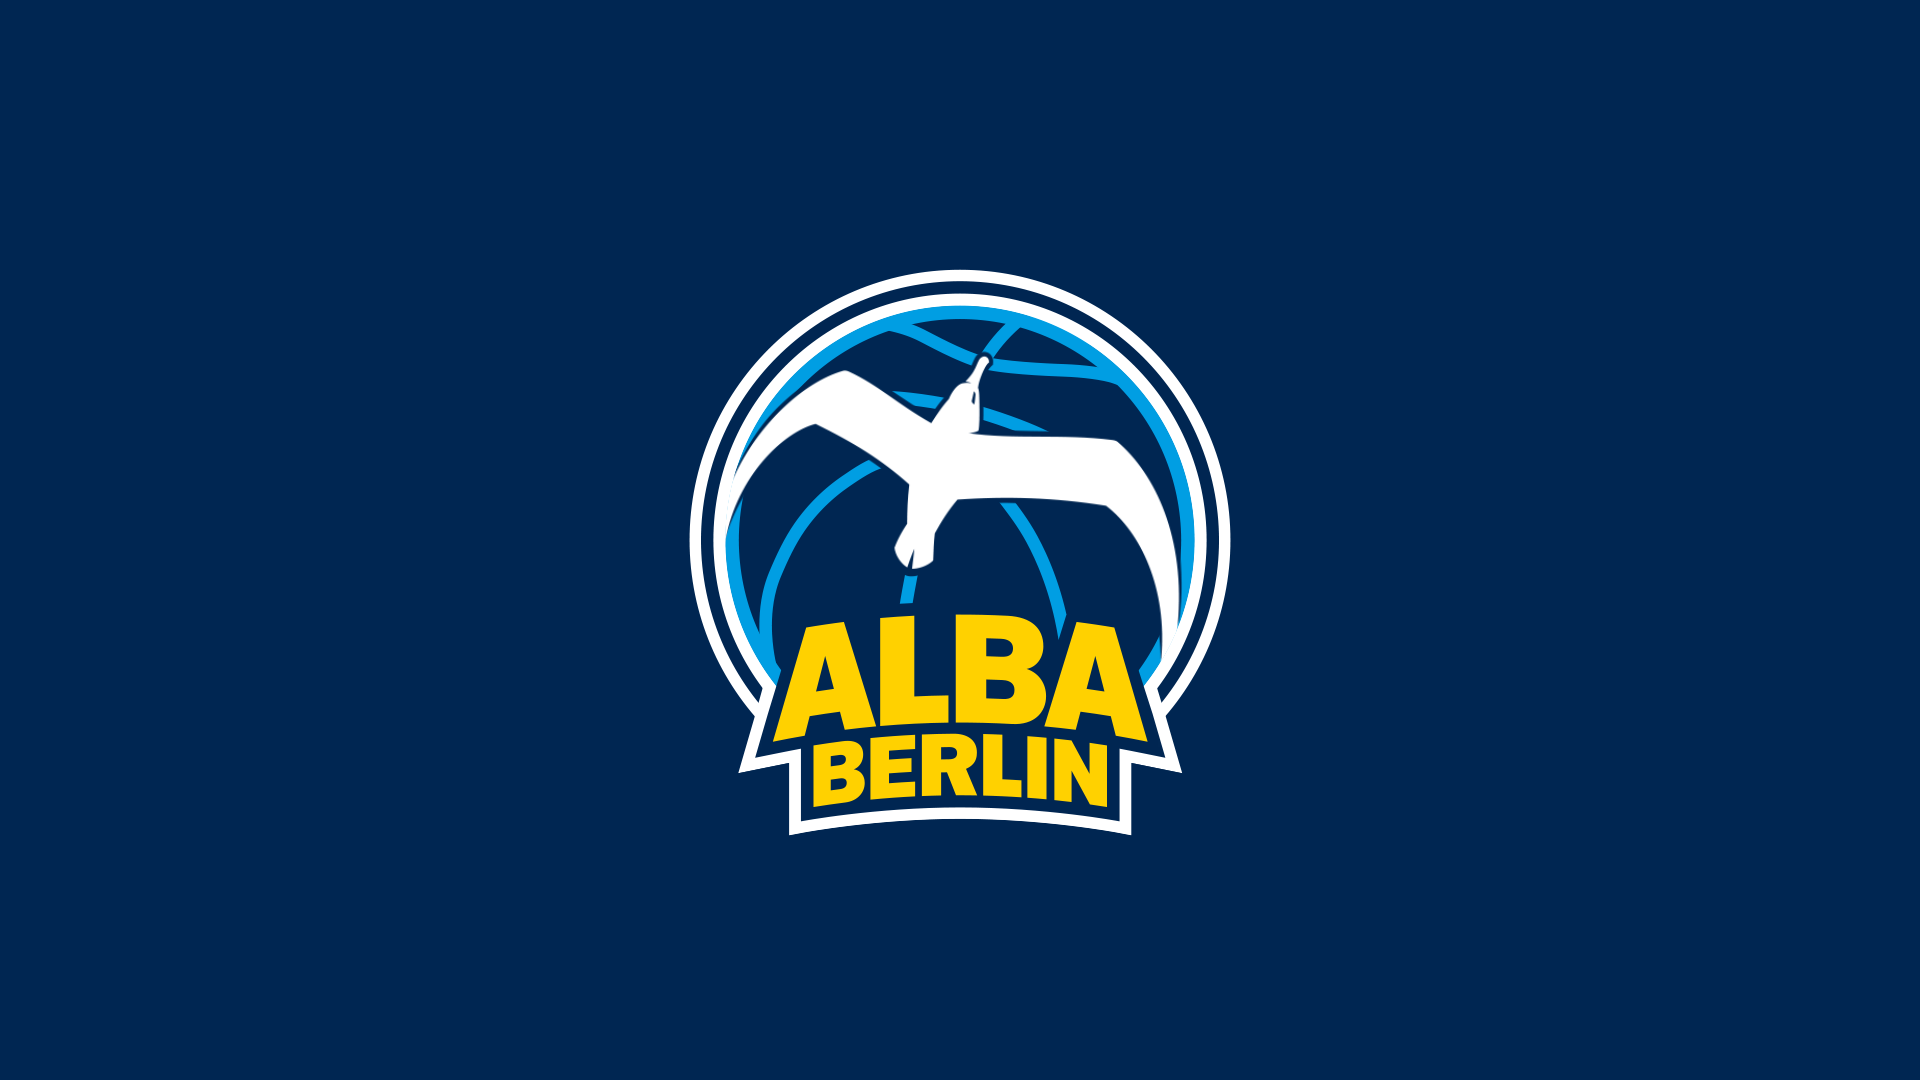 ALBA Berlin - Logoanimation